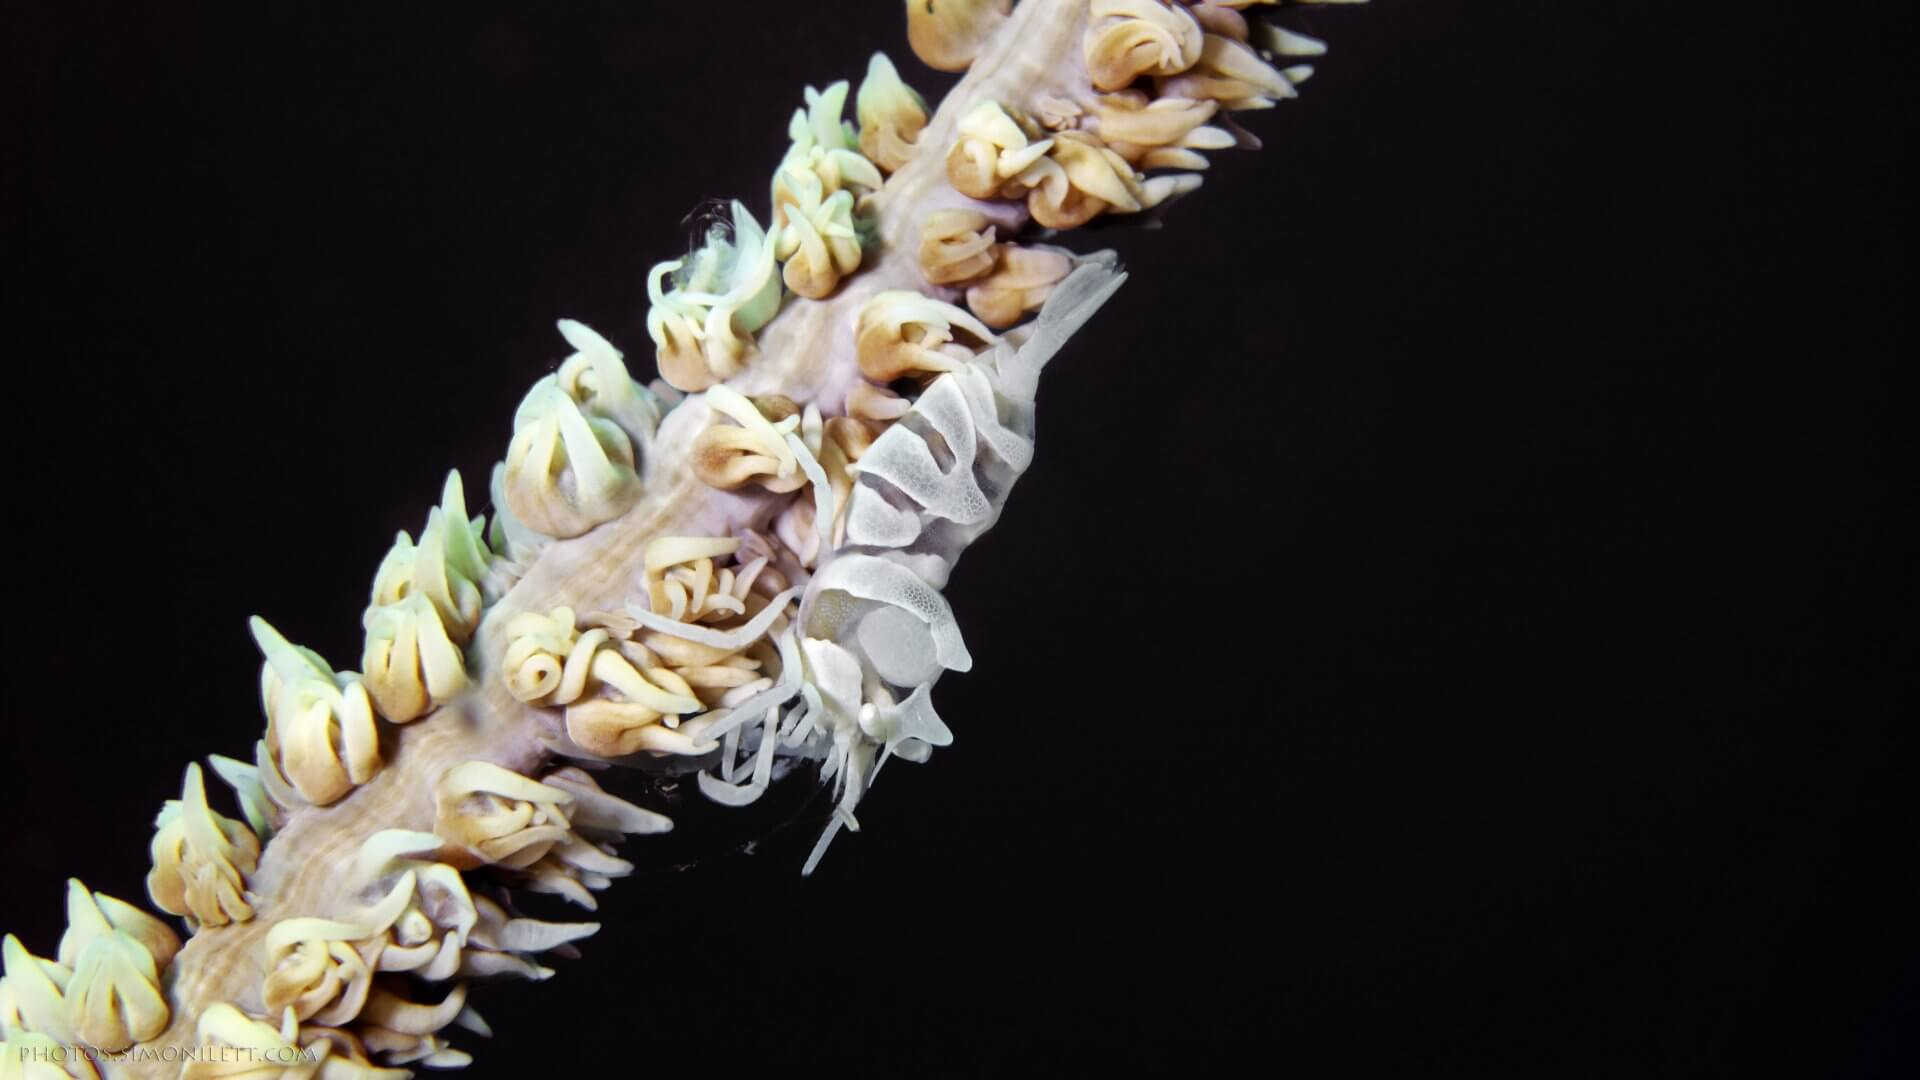 Whip Coral Shrimp In The Black Of Night